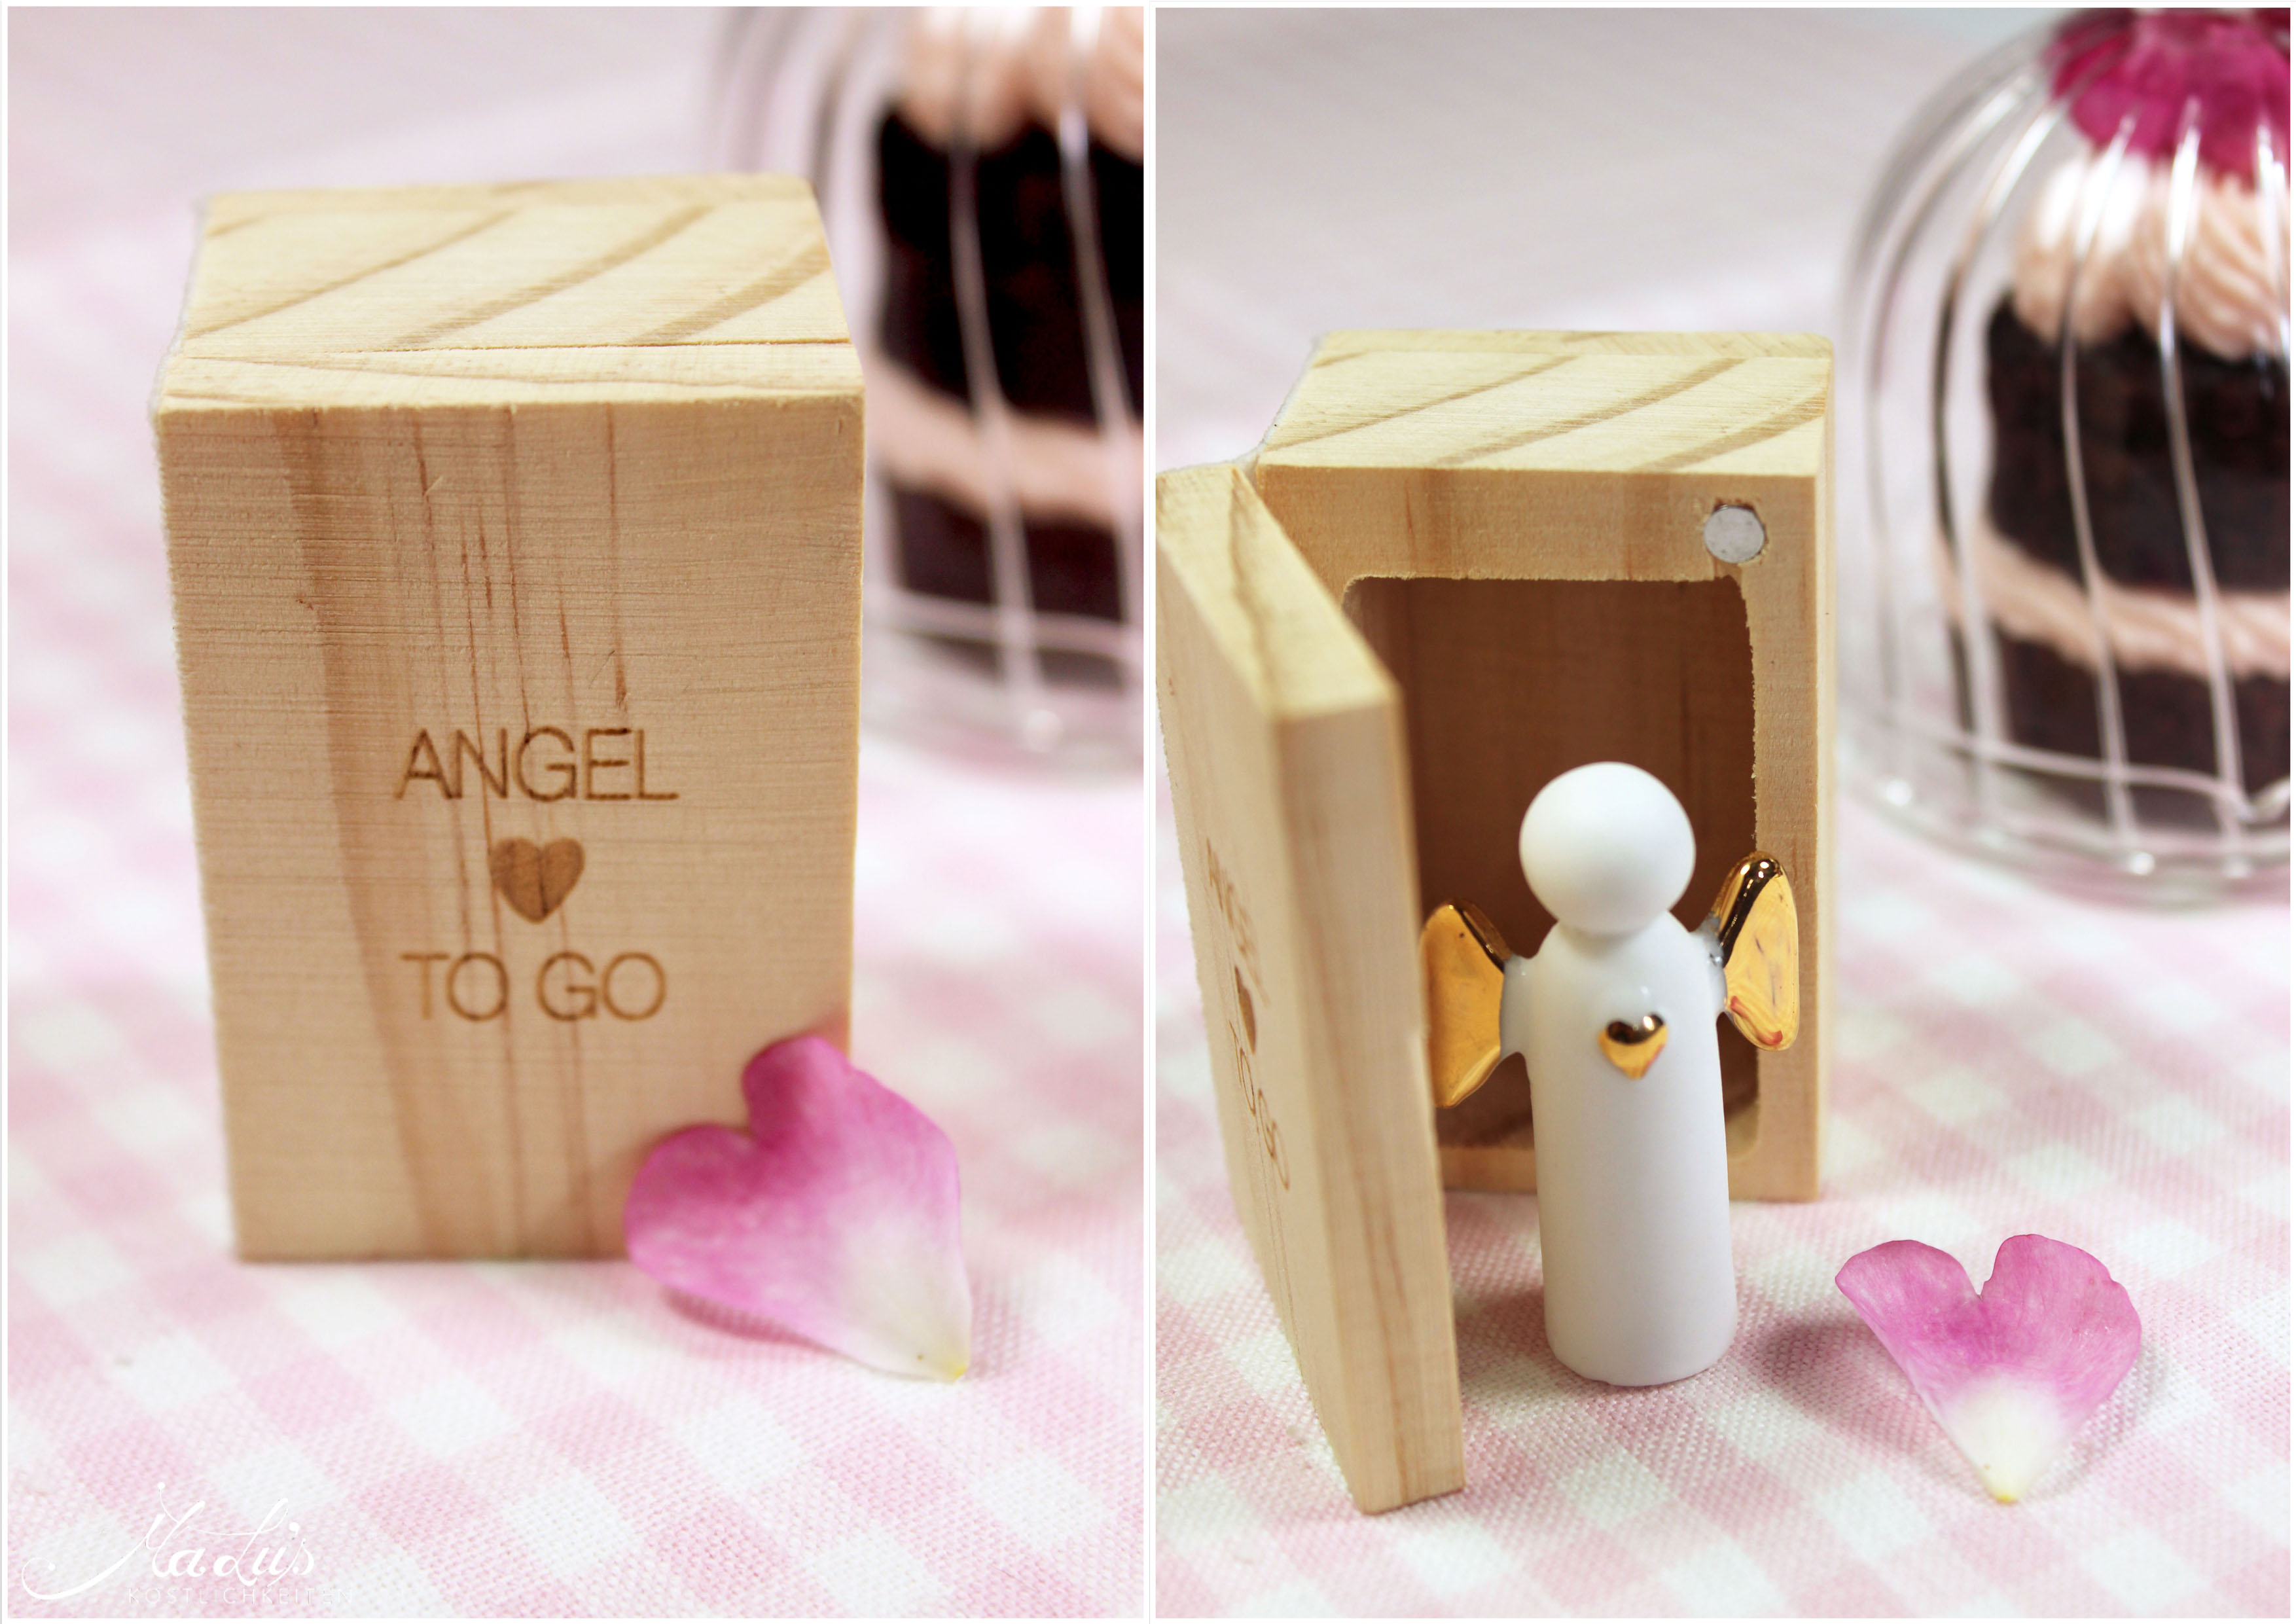 Angel to go f